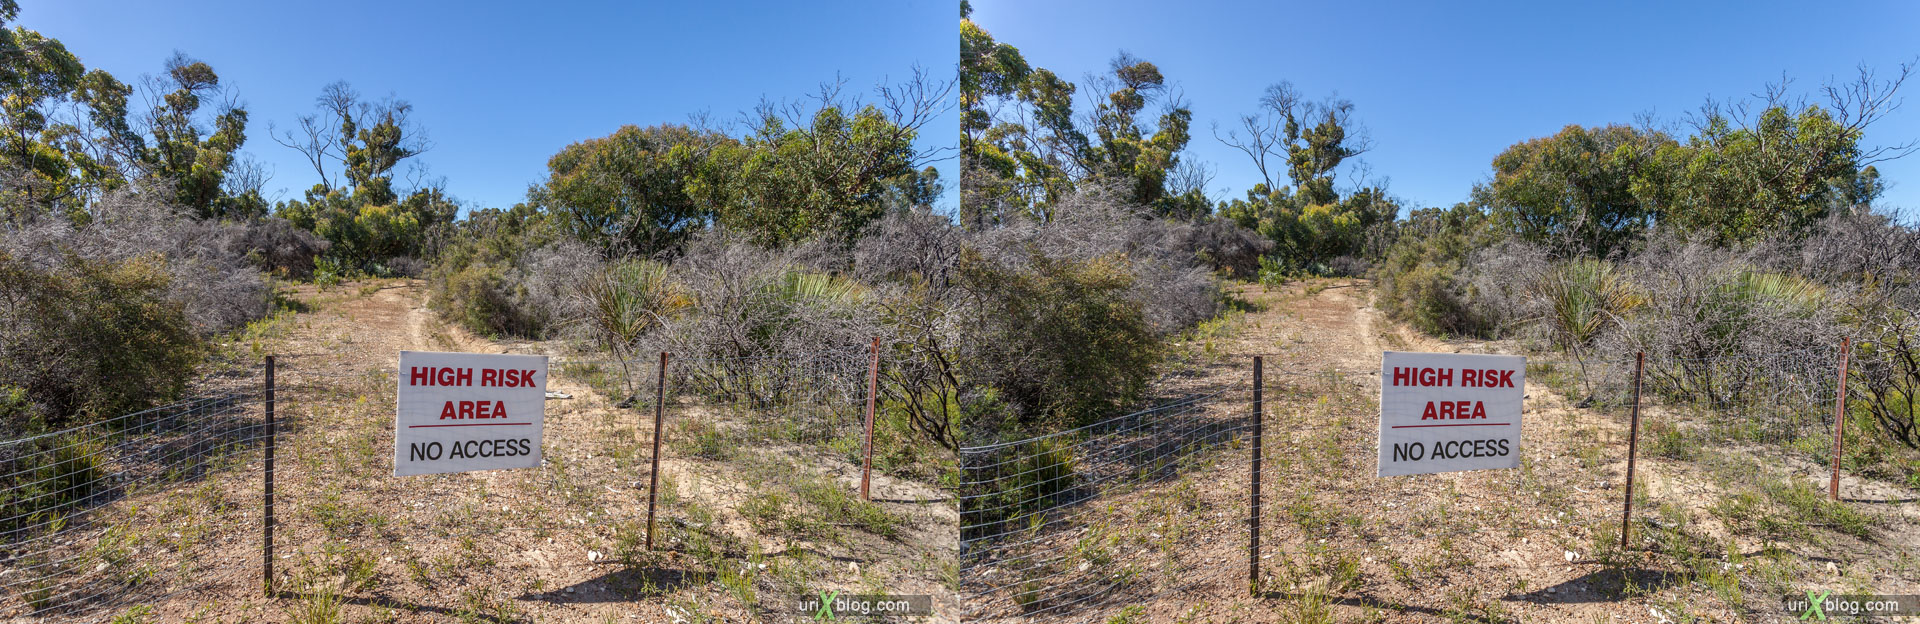 Flinders Chase National Park, Kangaroo Island, Australia, 3D, stereo pair, cross-eyed, crossview, cross view stereo pair, stereoscopic, 2011